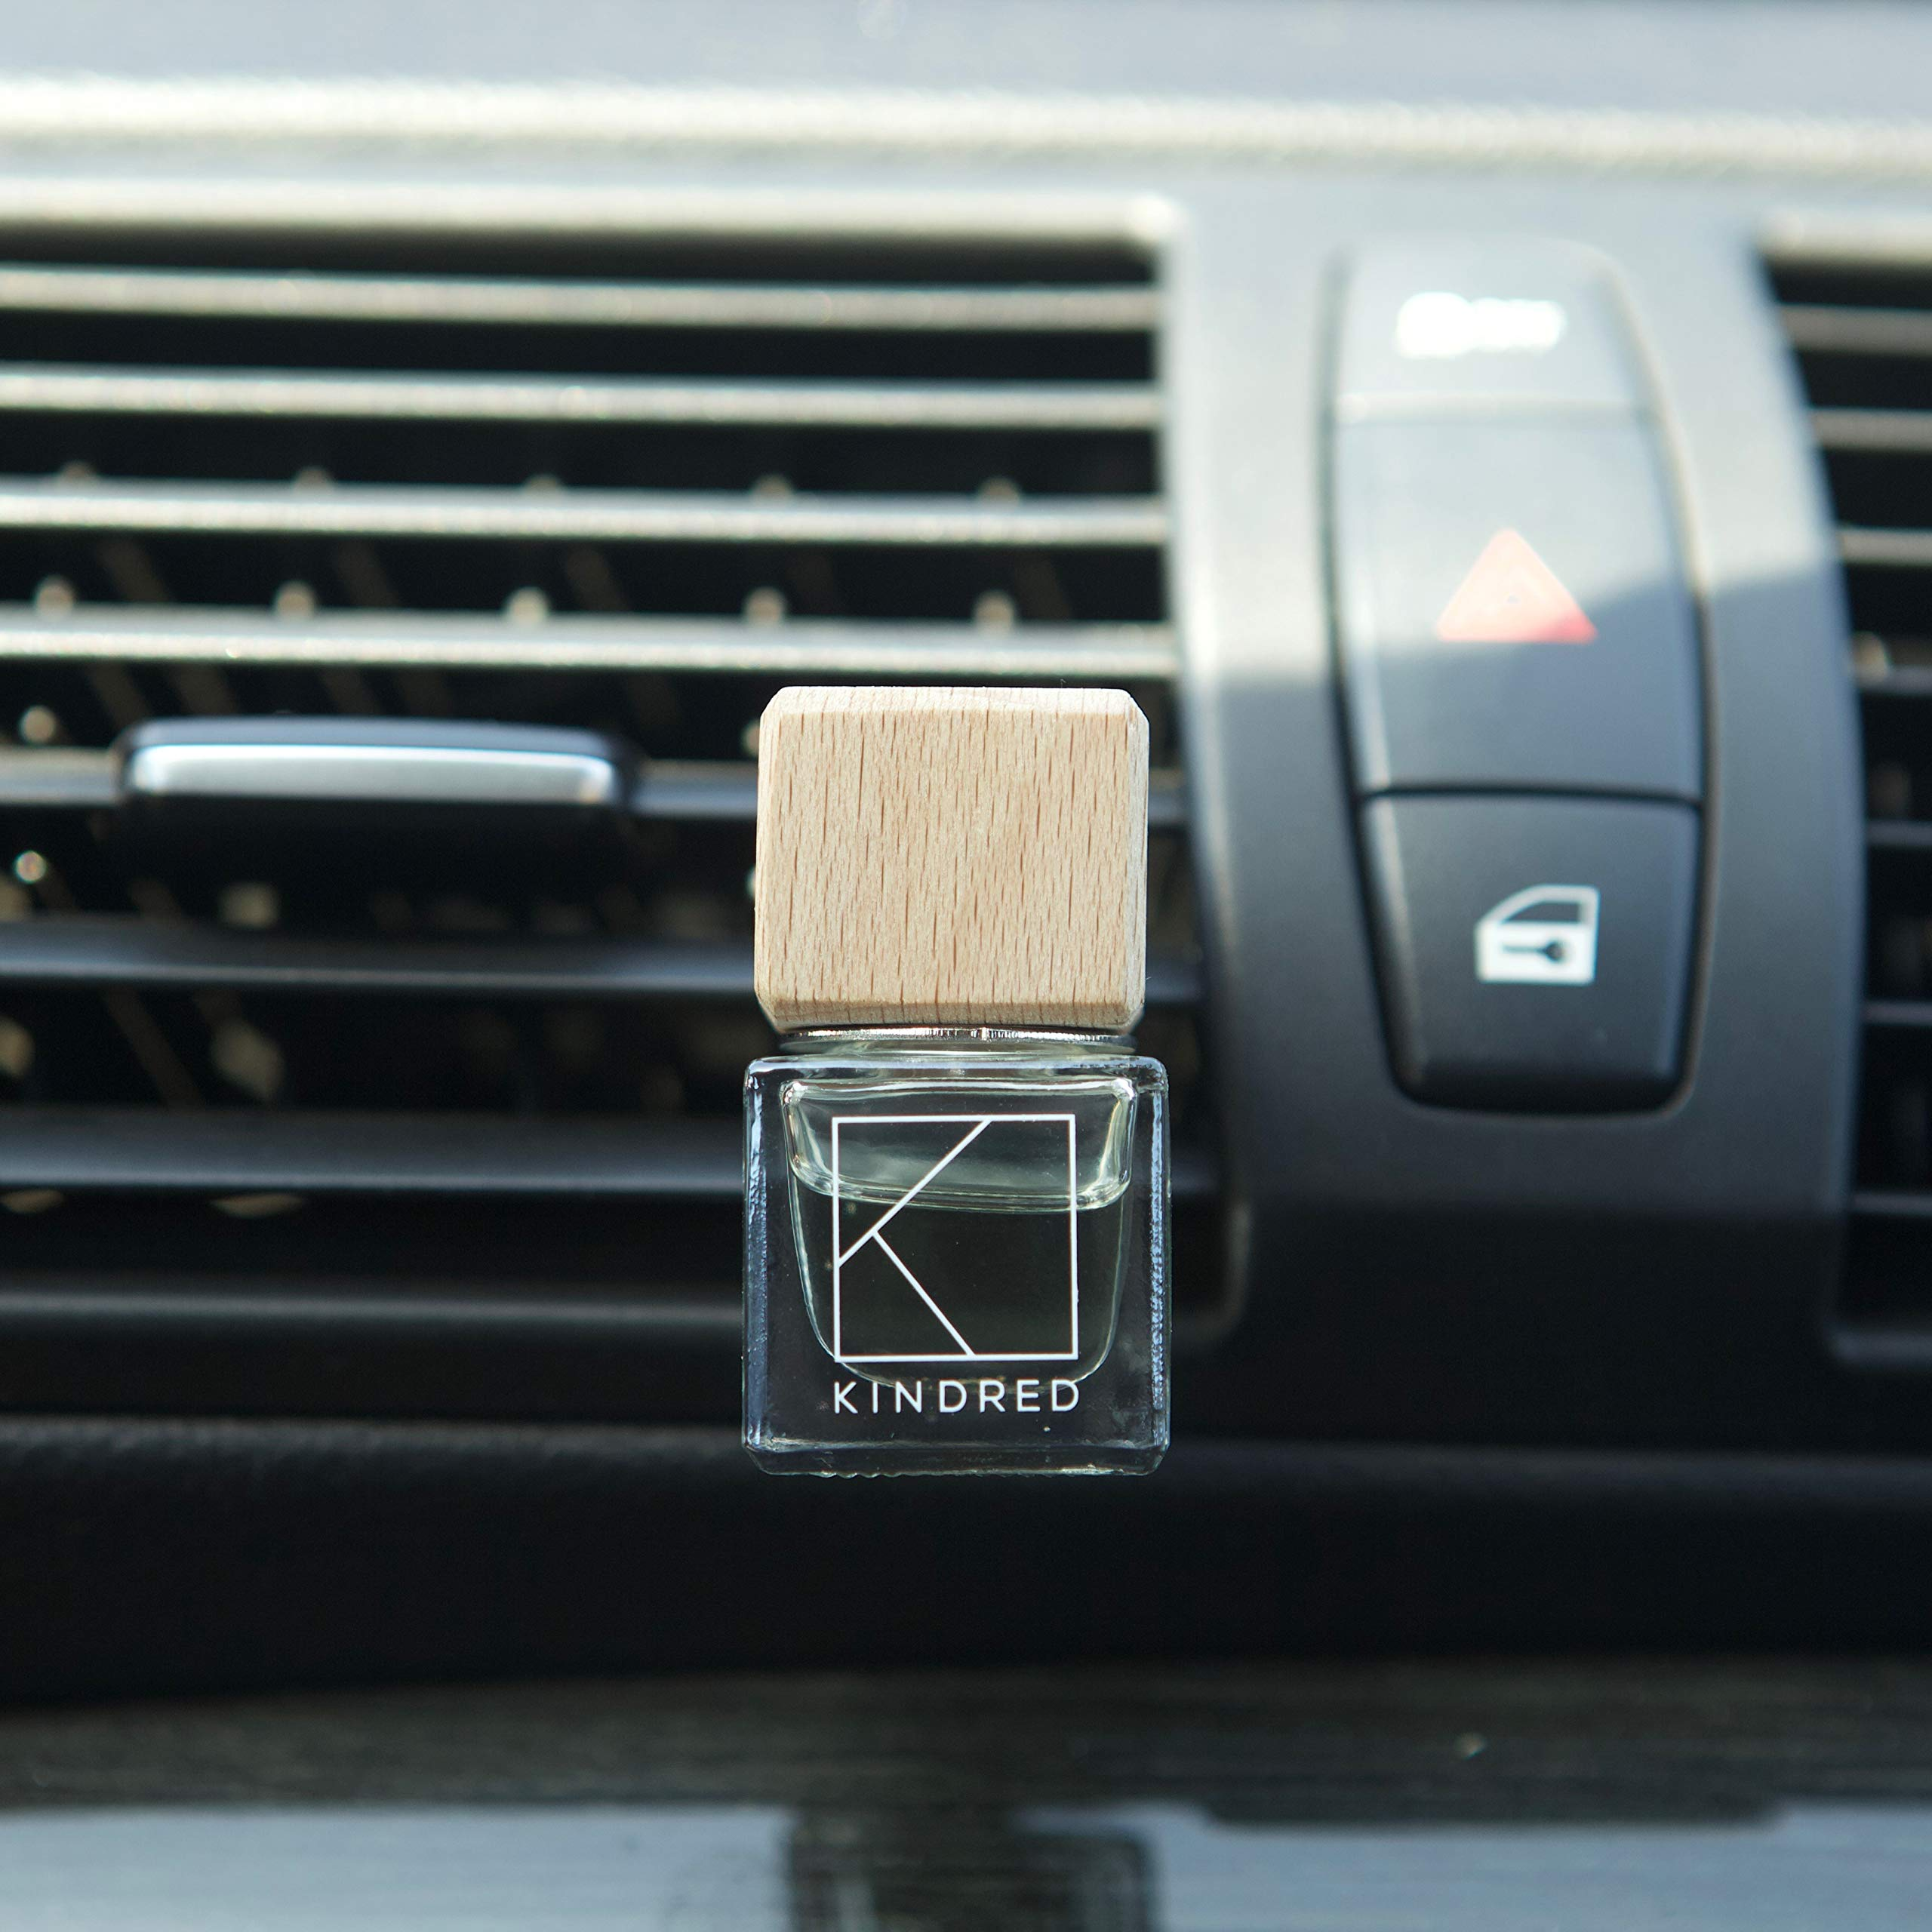 Kindred Aroma Natural Wood Car Essential Oil Diffuser + 10ml Pure Aromatherapy Lavender Essential Oil + Natural Car Air Freshener Vent Clip by Kindred Aroma